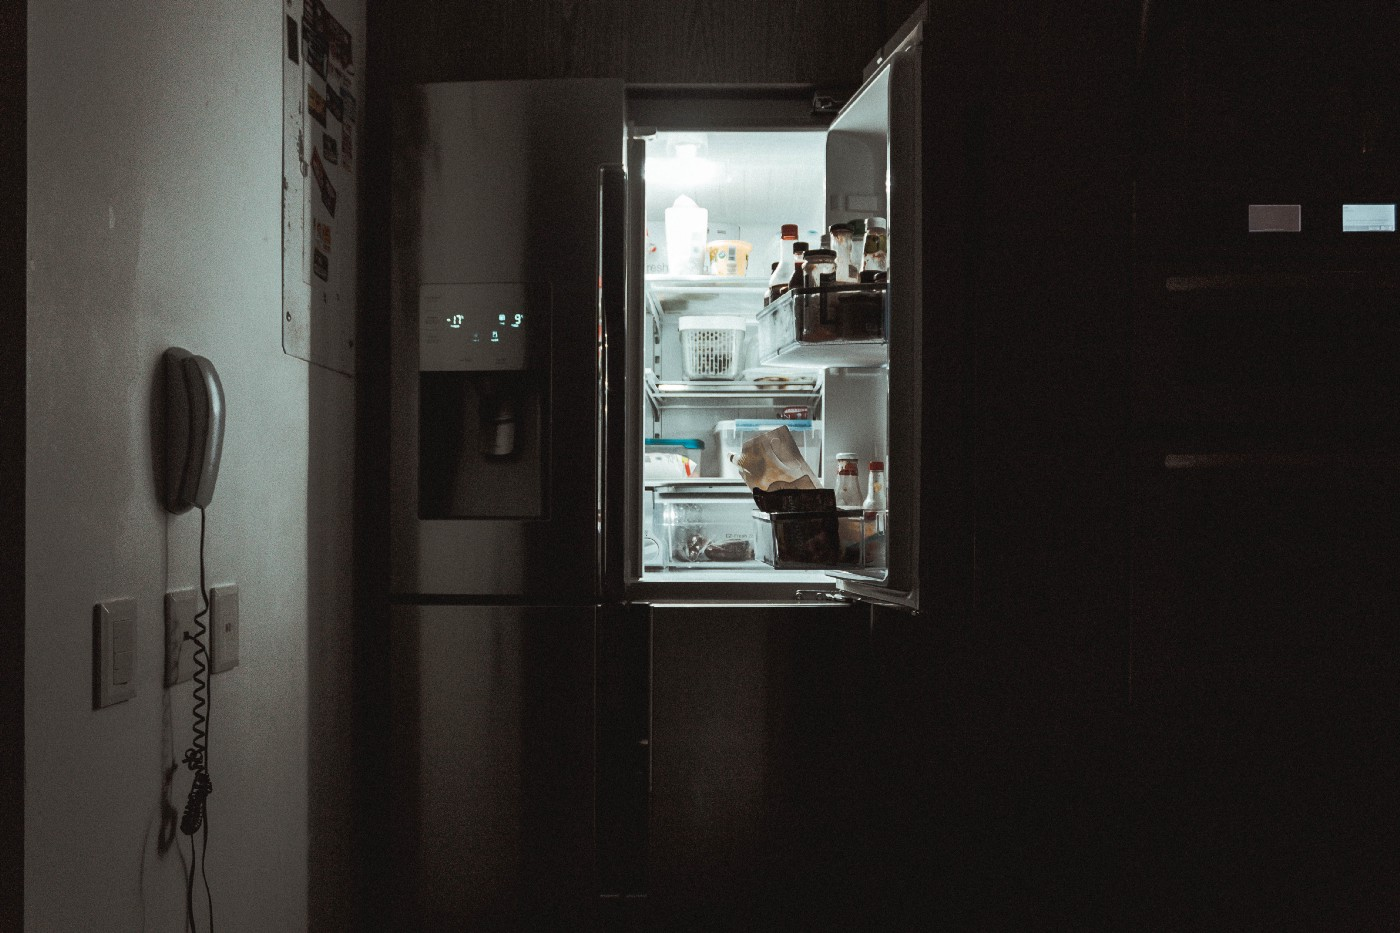 An open, lit refrigerator in a dark kitchen waiting for a fridge forage session to find your next meal.